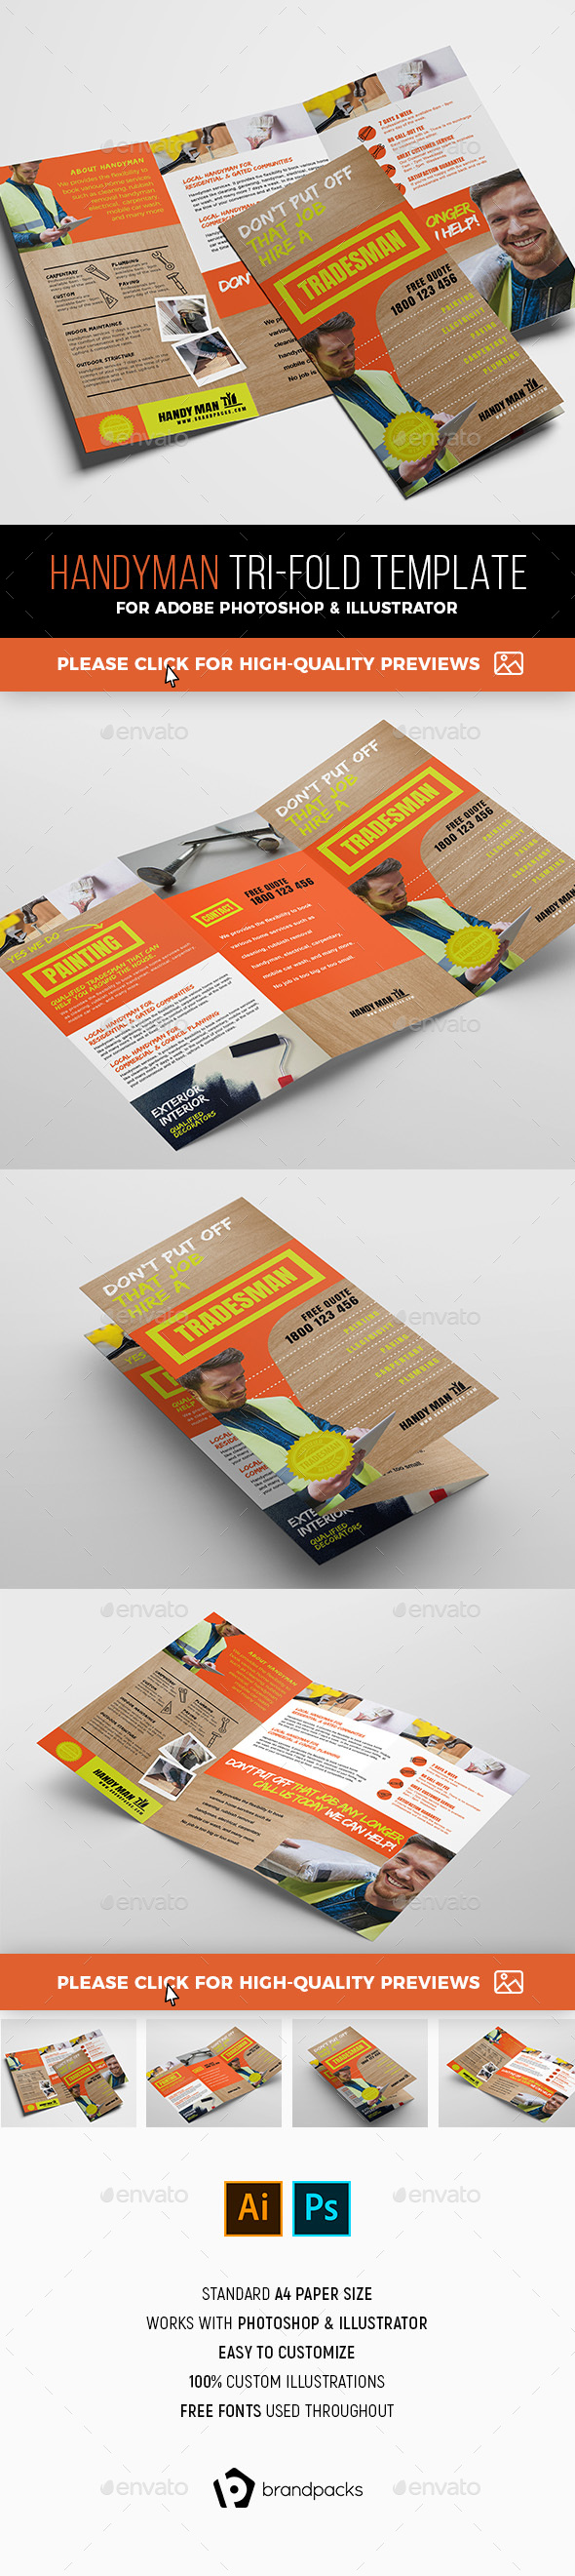 Handyman Trifold Brochure Template - Commerce Flyers